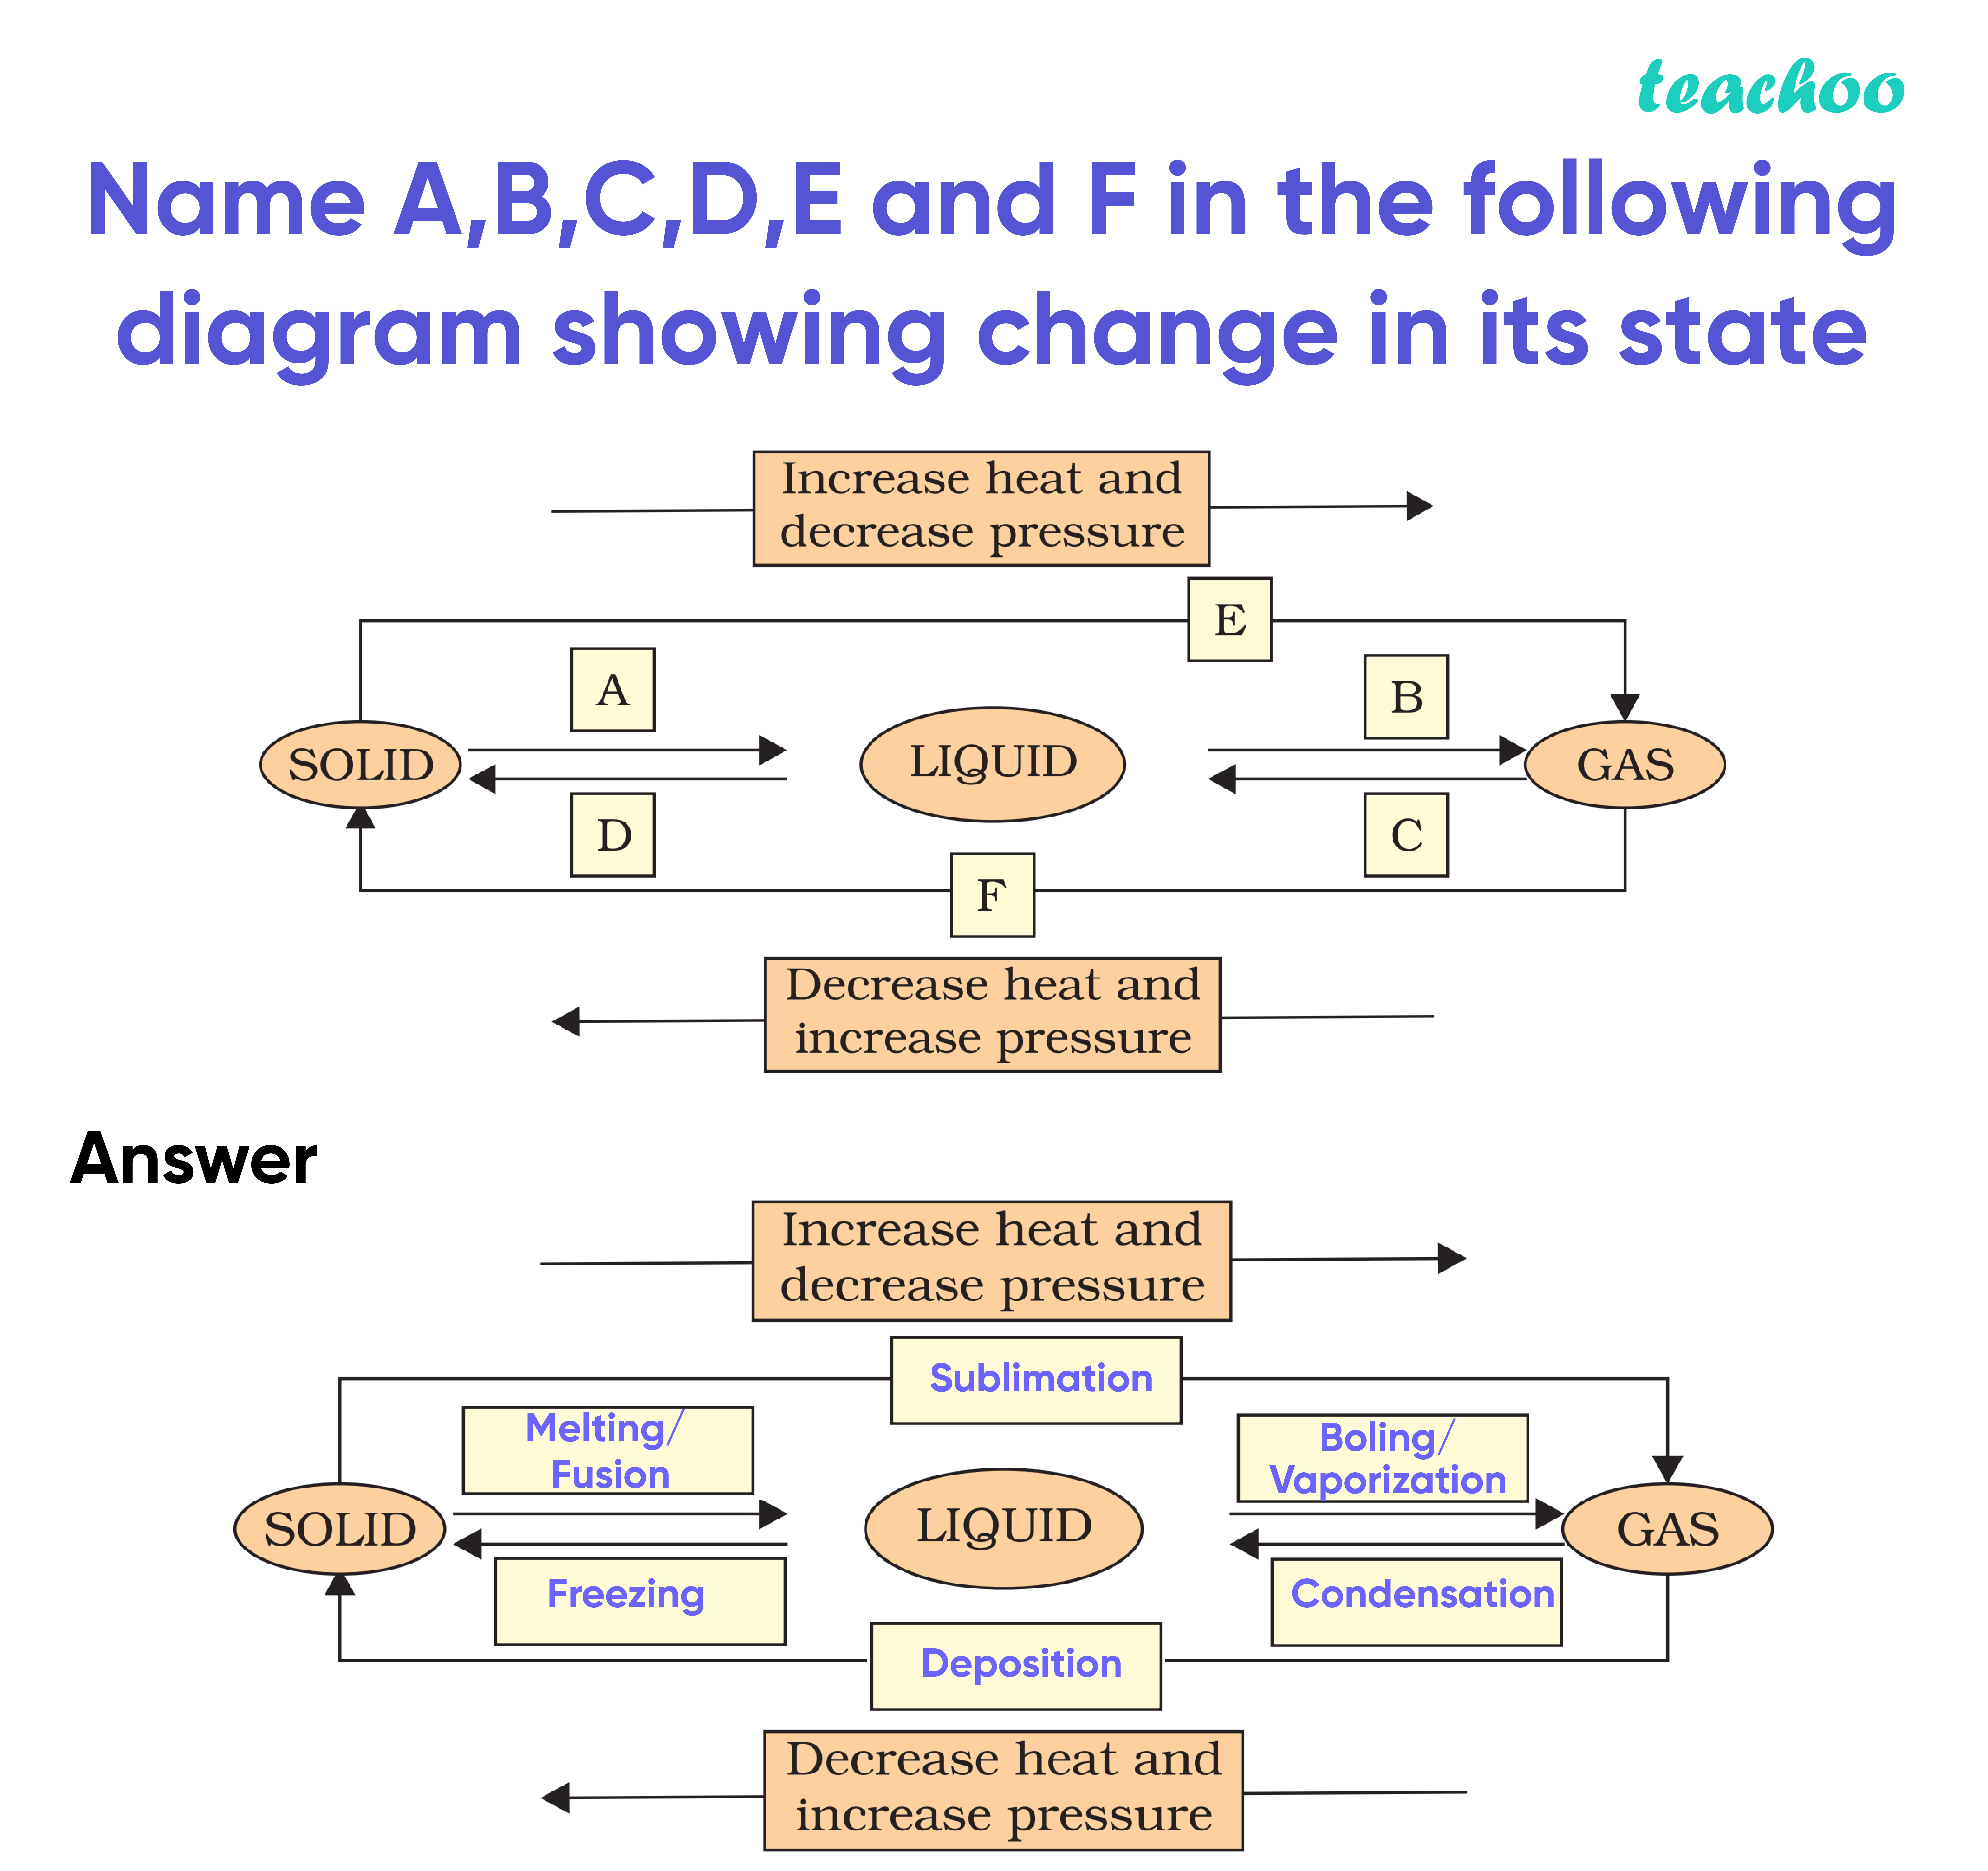 Name A,B,C,D,E and F in the following diagram showing change in its state-Teachoo.jpg